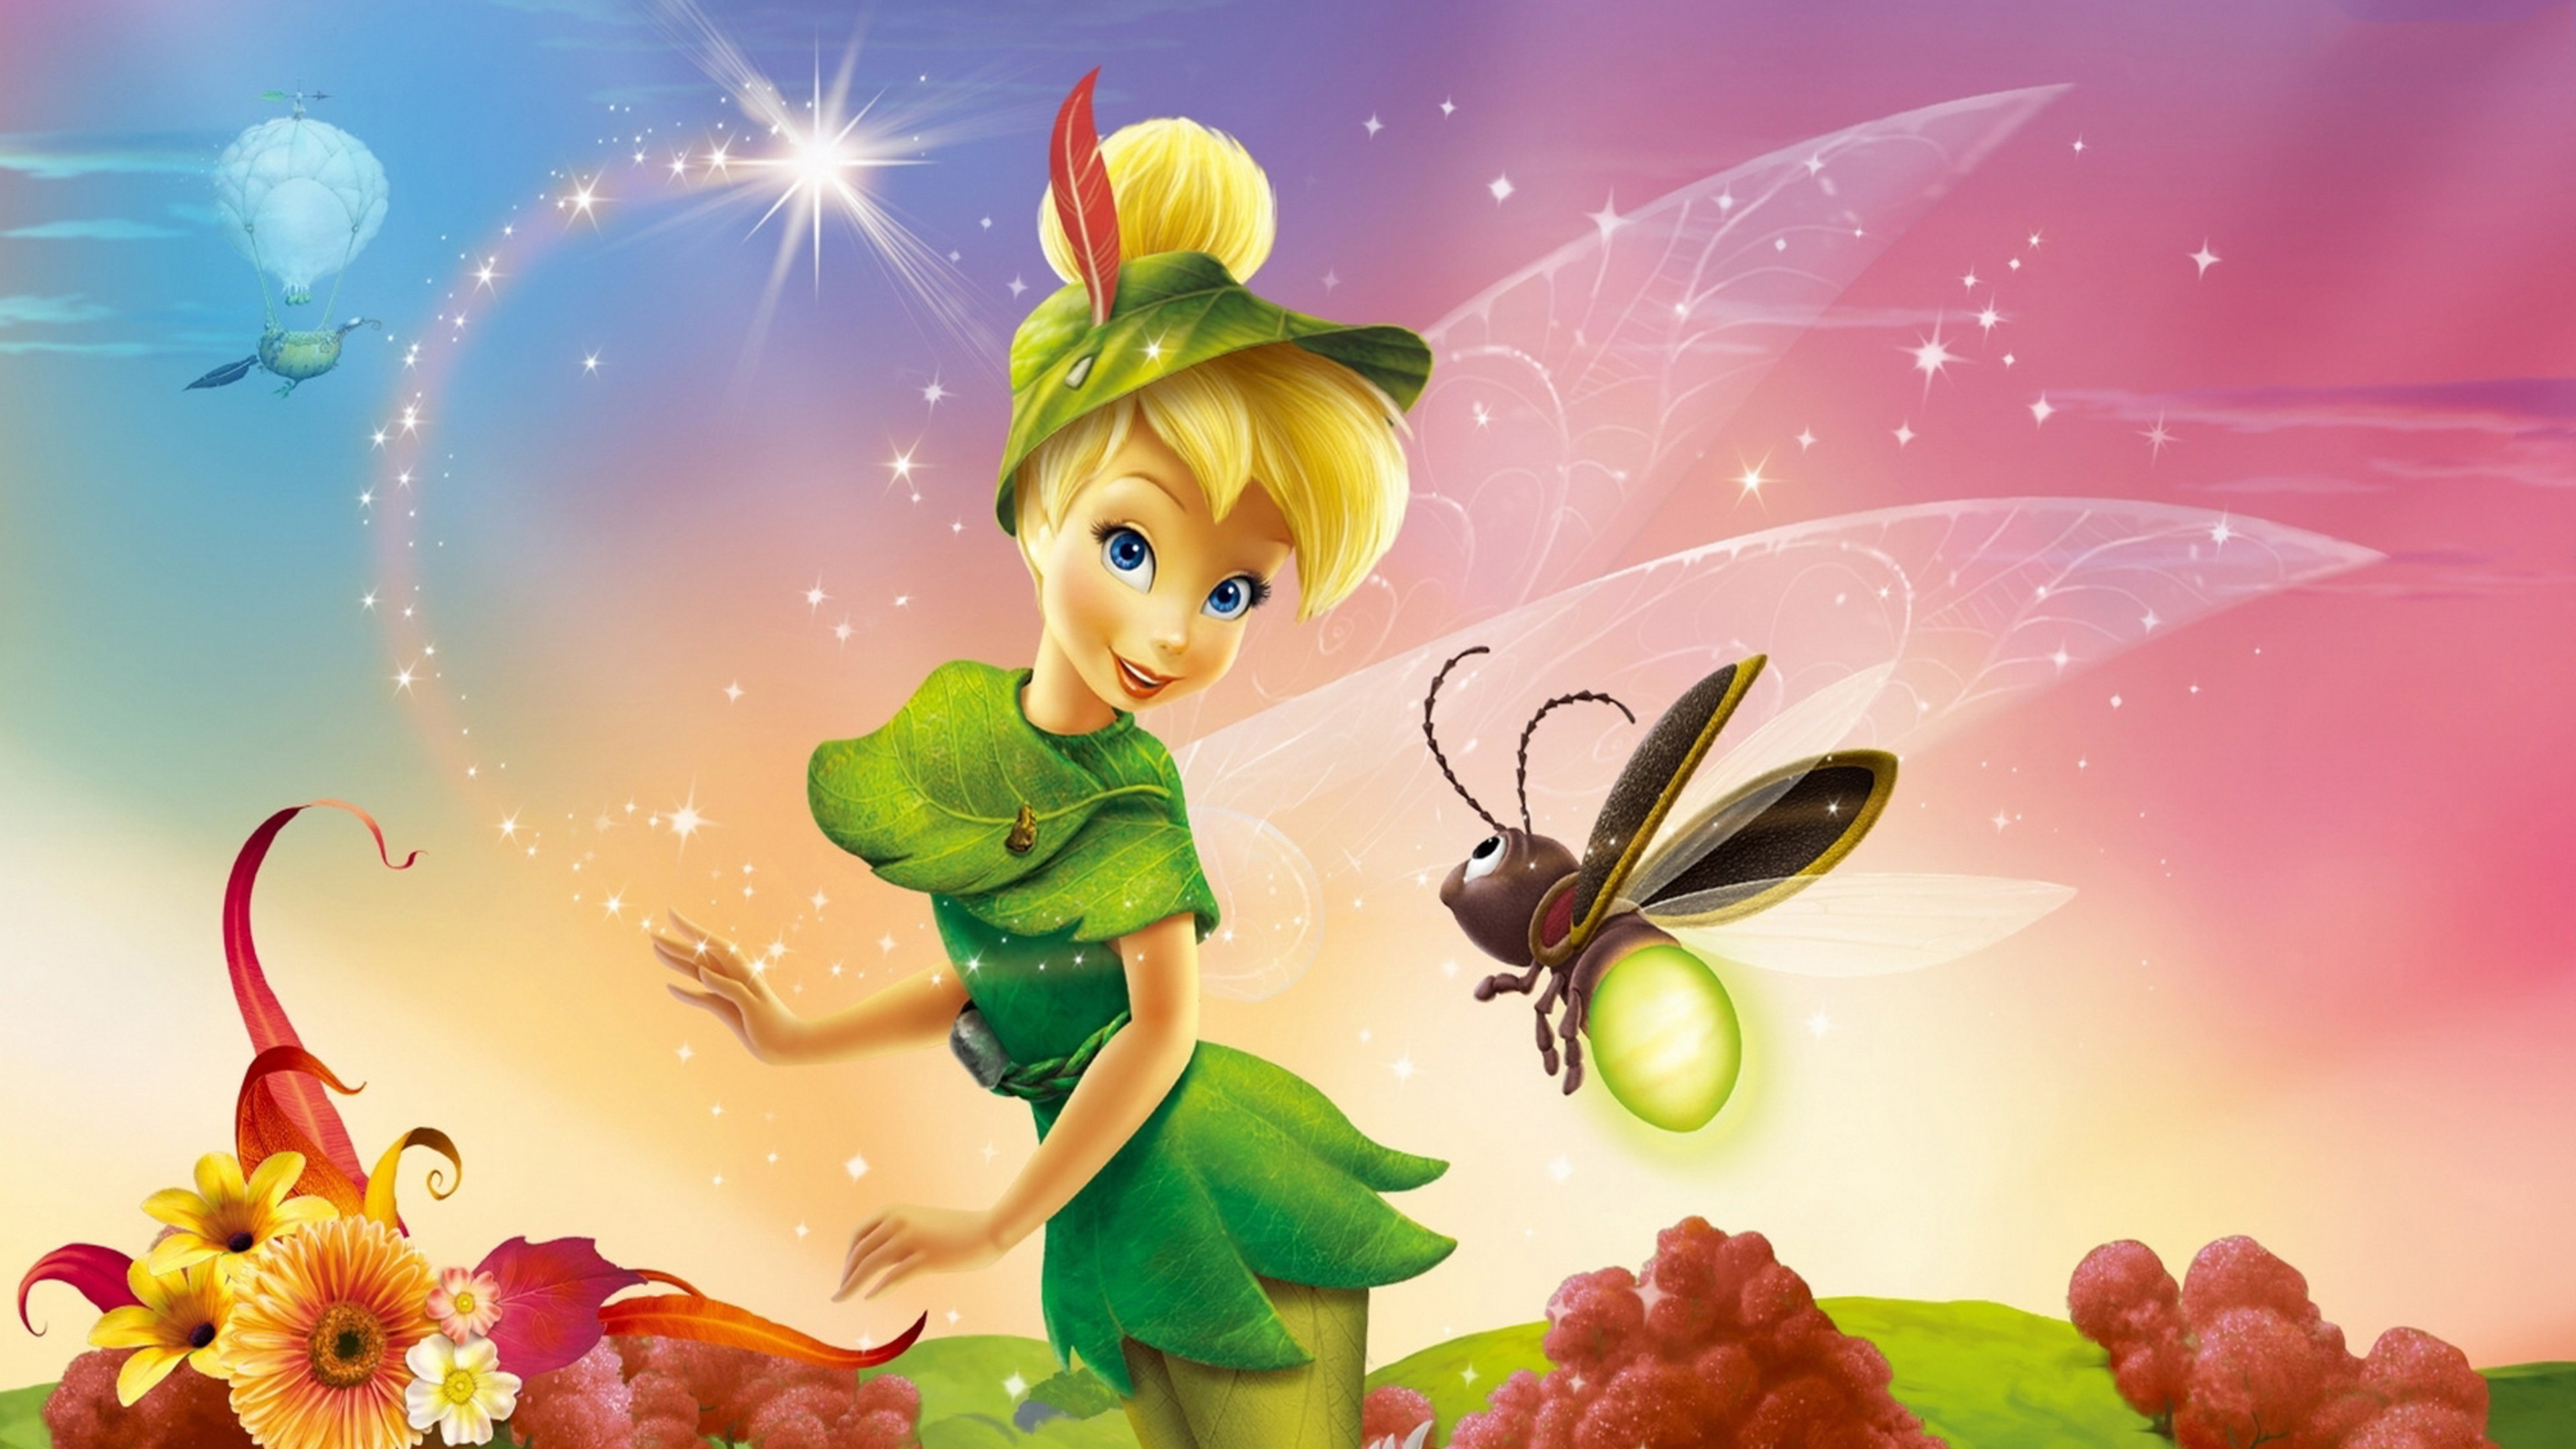 Res: 3840x2160, Tinkerbell and a bee - Disney Princess  Download